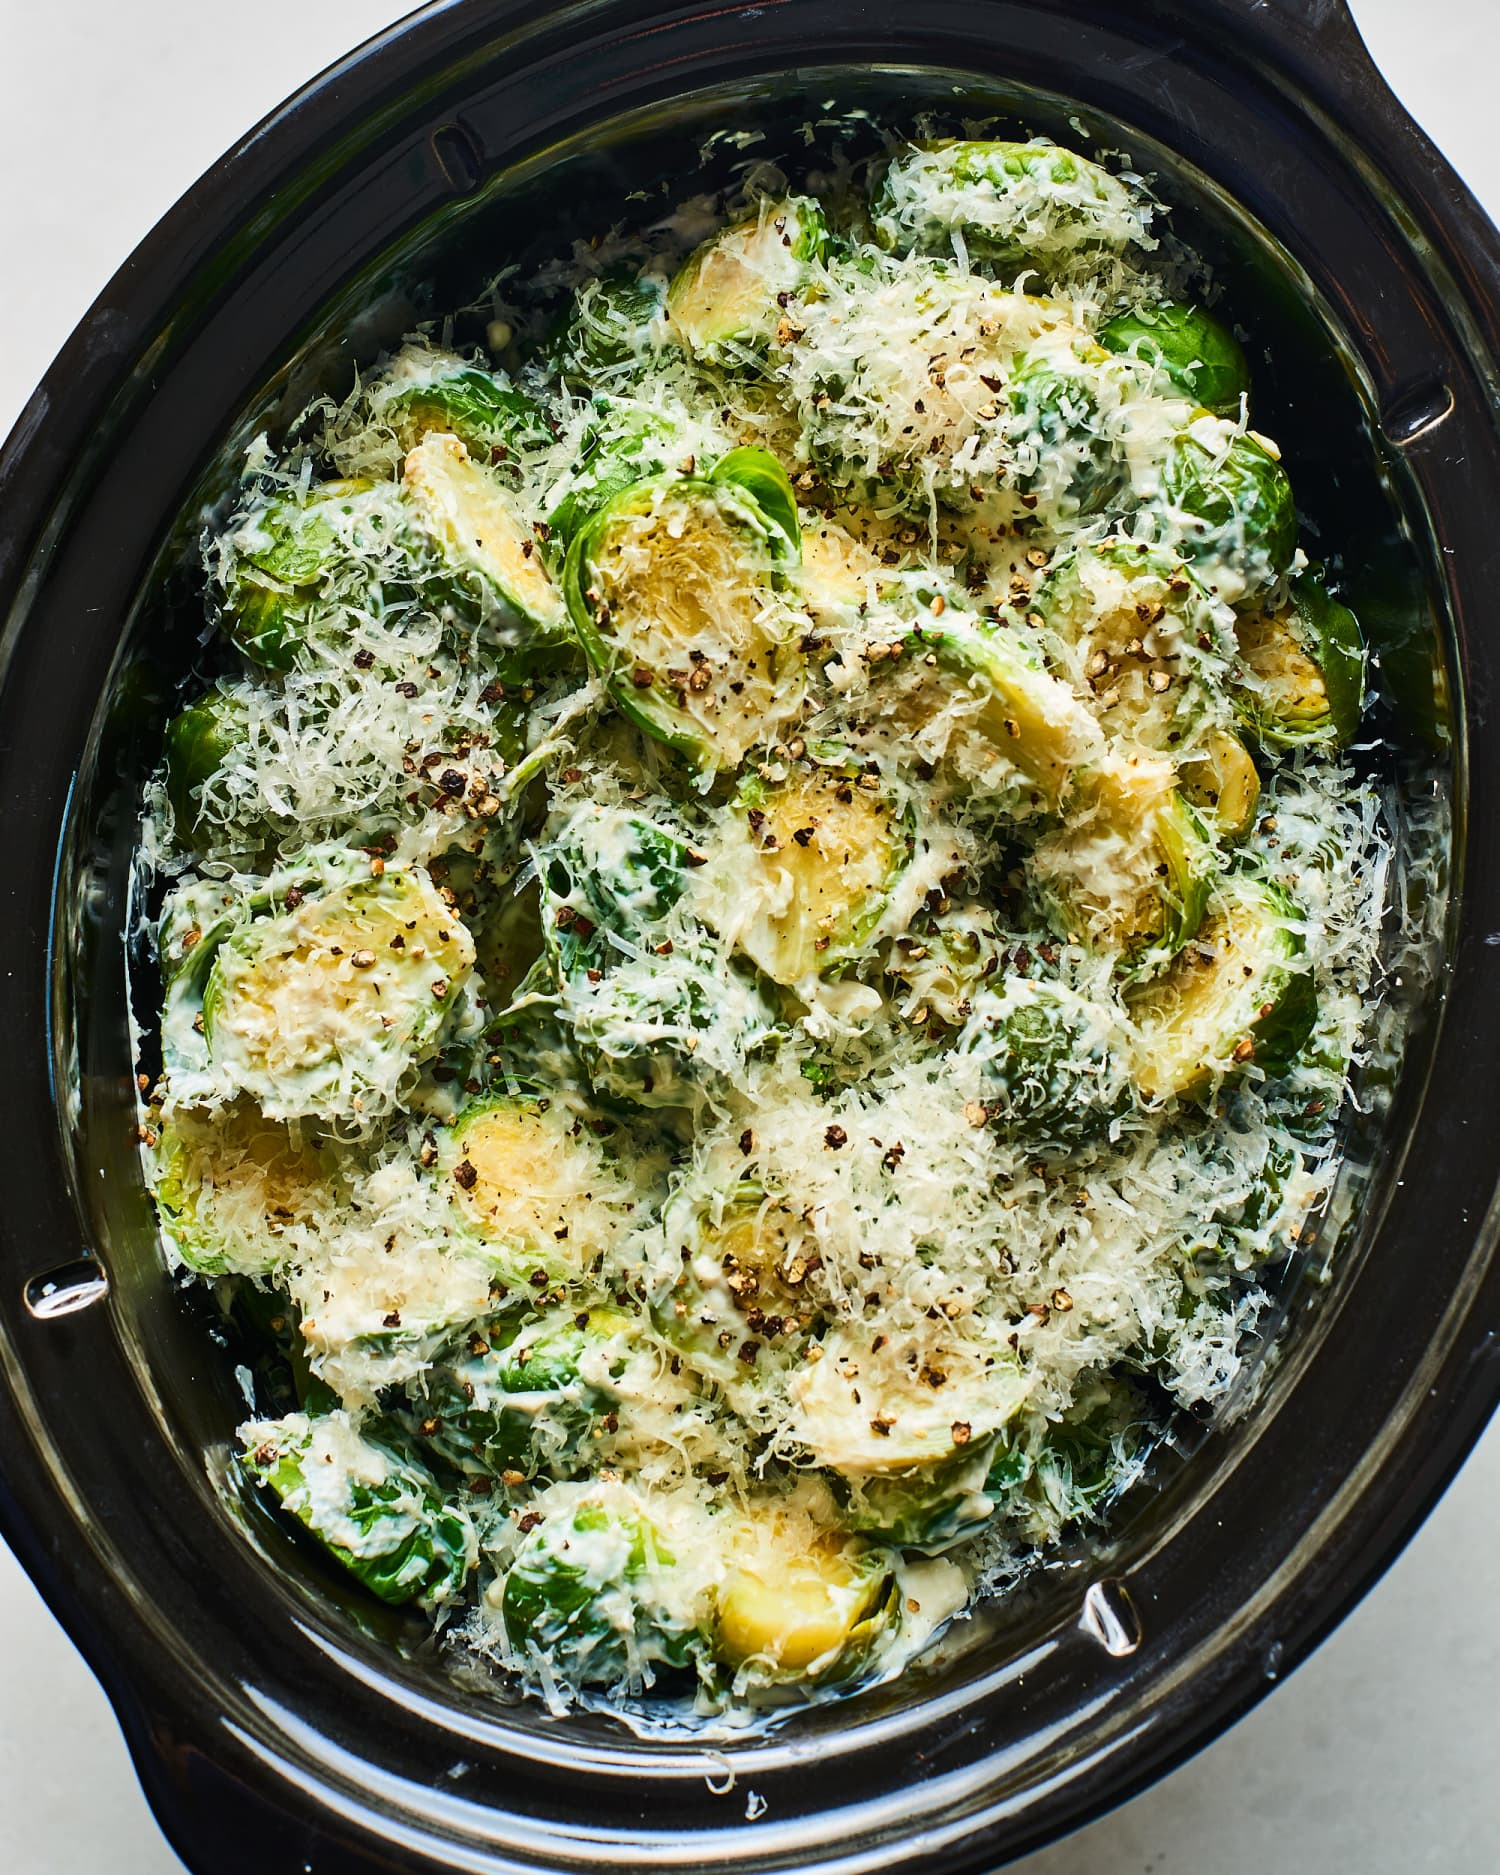 Recipe: Slow Cooker Cheesy Garlic Brussels Sprouts